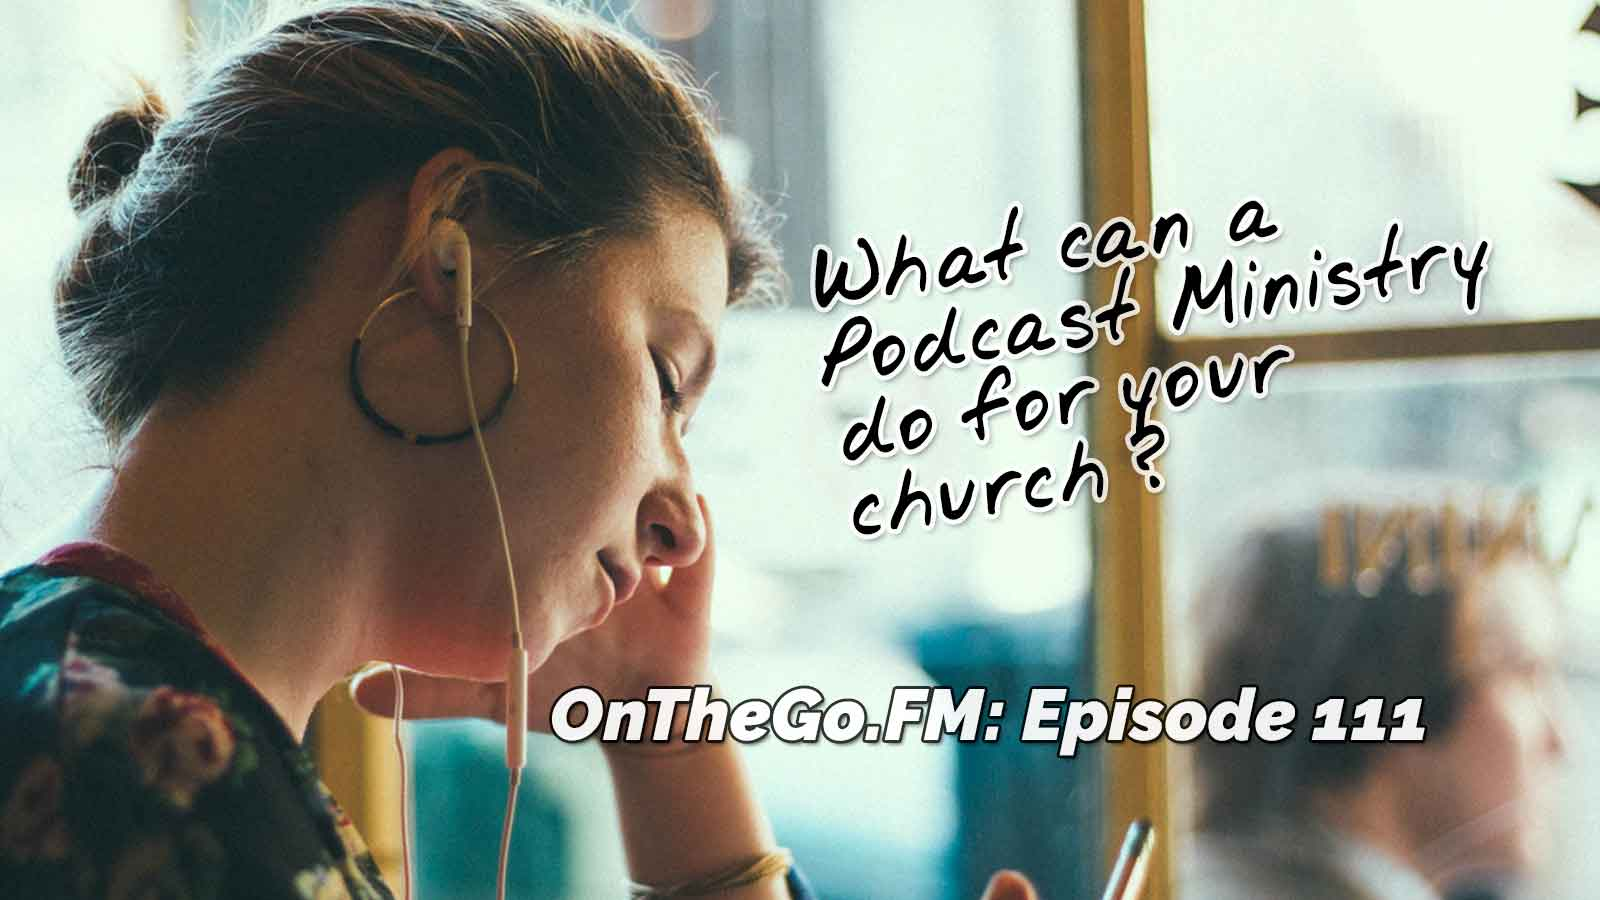 What can a podcast ministry do for your church? OnTheGo.FM Episode 111